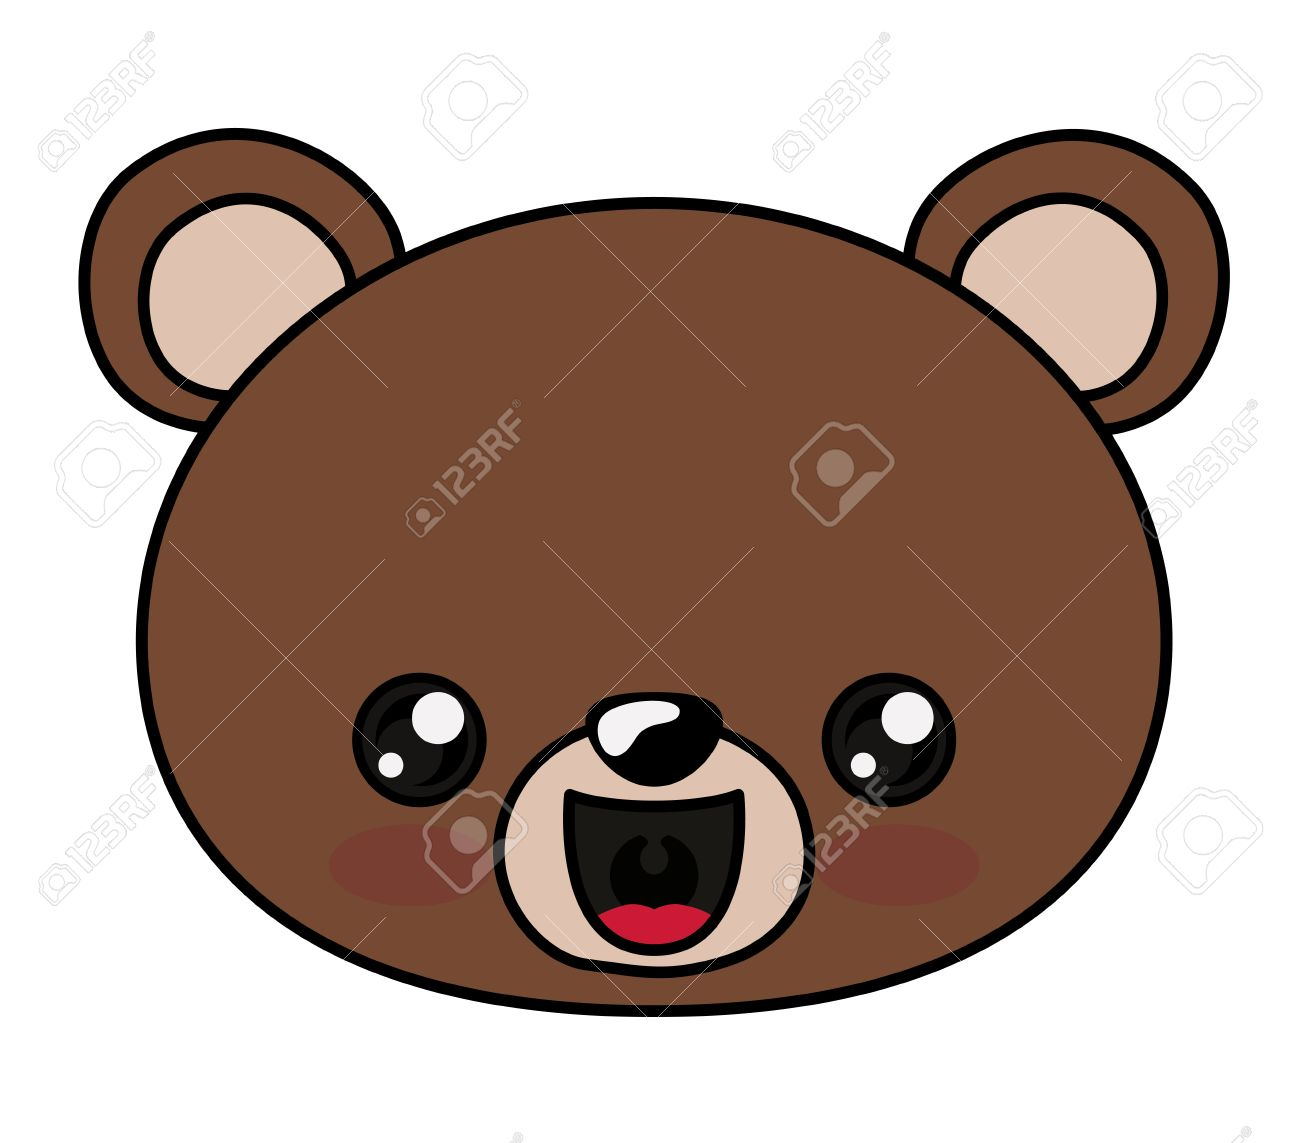 bear with kawaii face icon cute animal cartoon and character